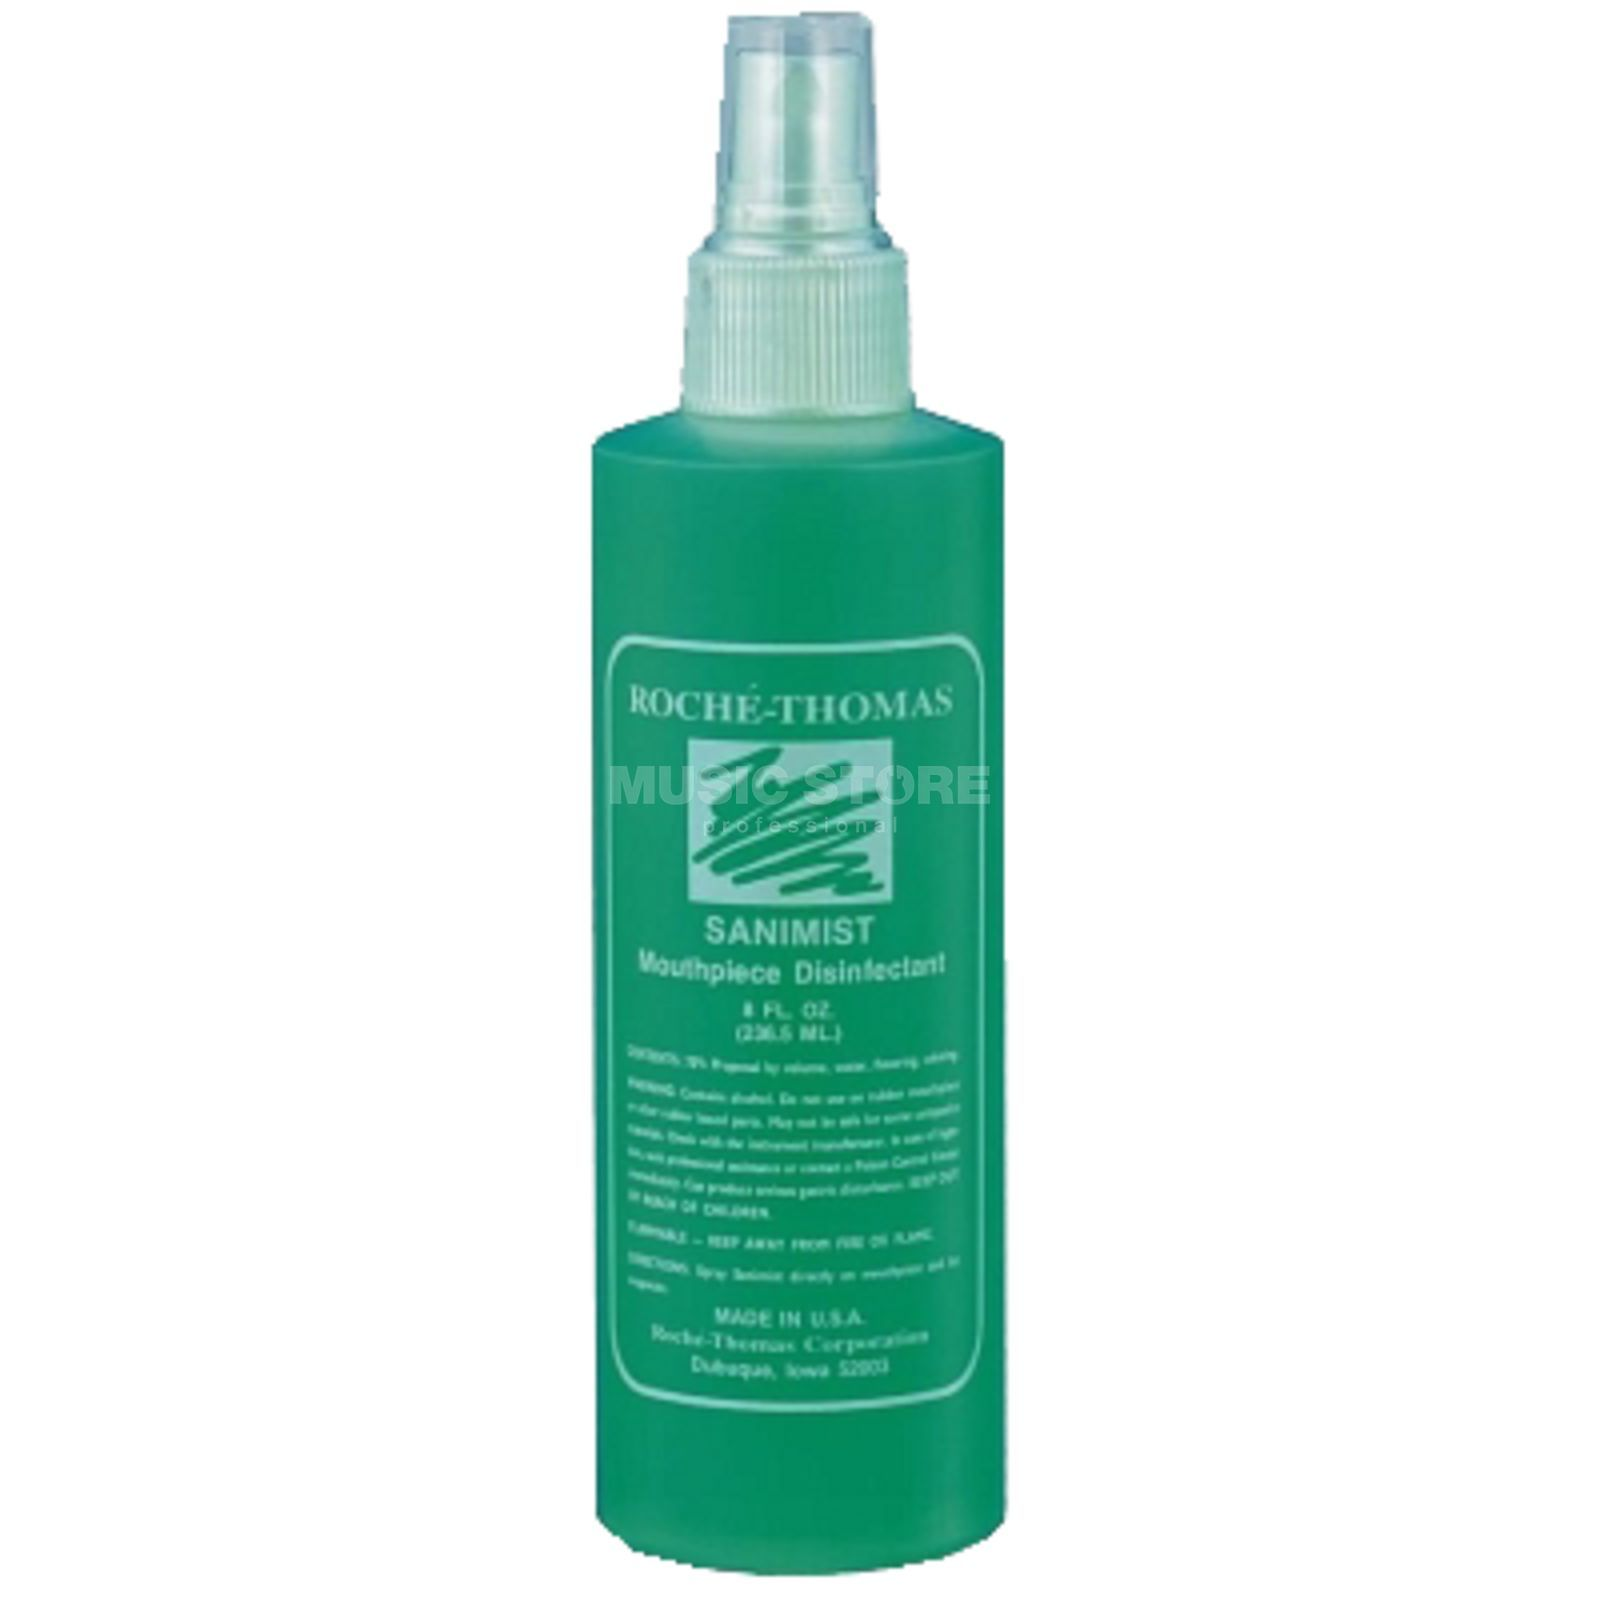 ROCHÉ-THOMAS Cleaning and Disinefectant Spray 235ml (100ml = 5.32Ç) Image du produit